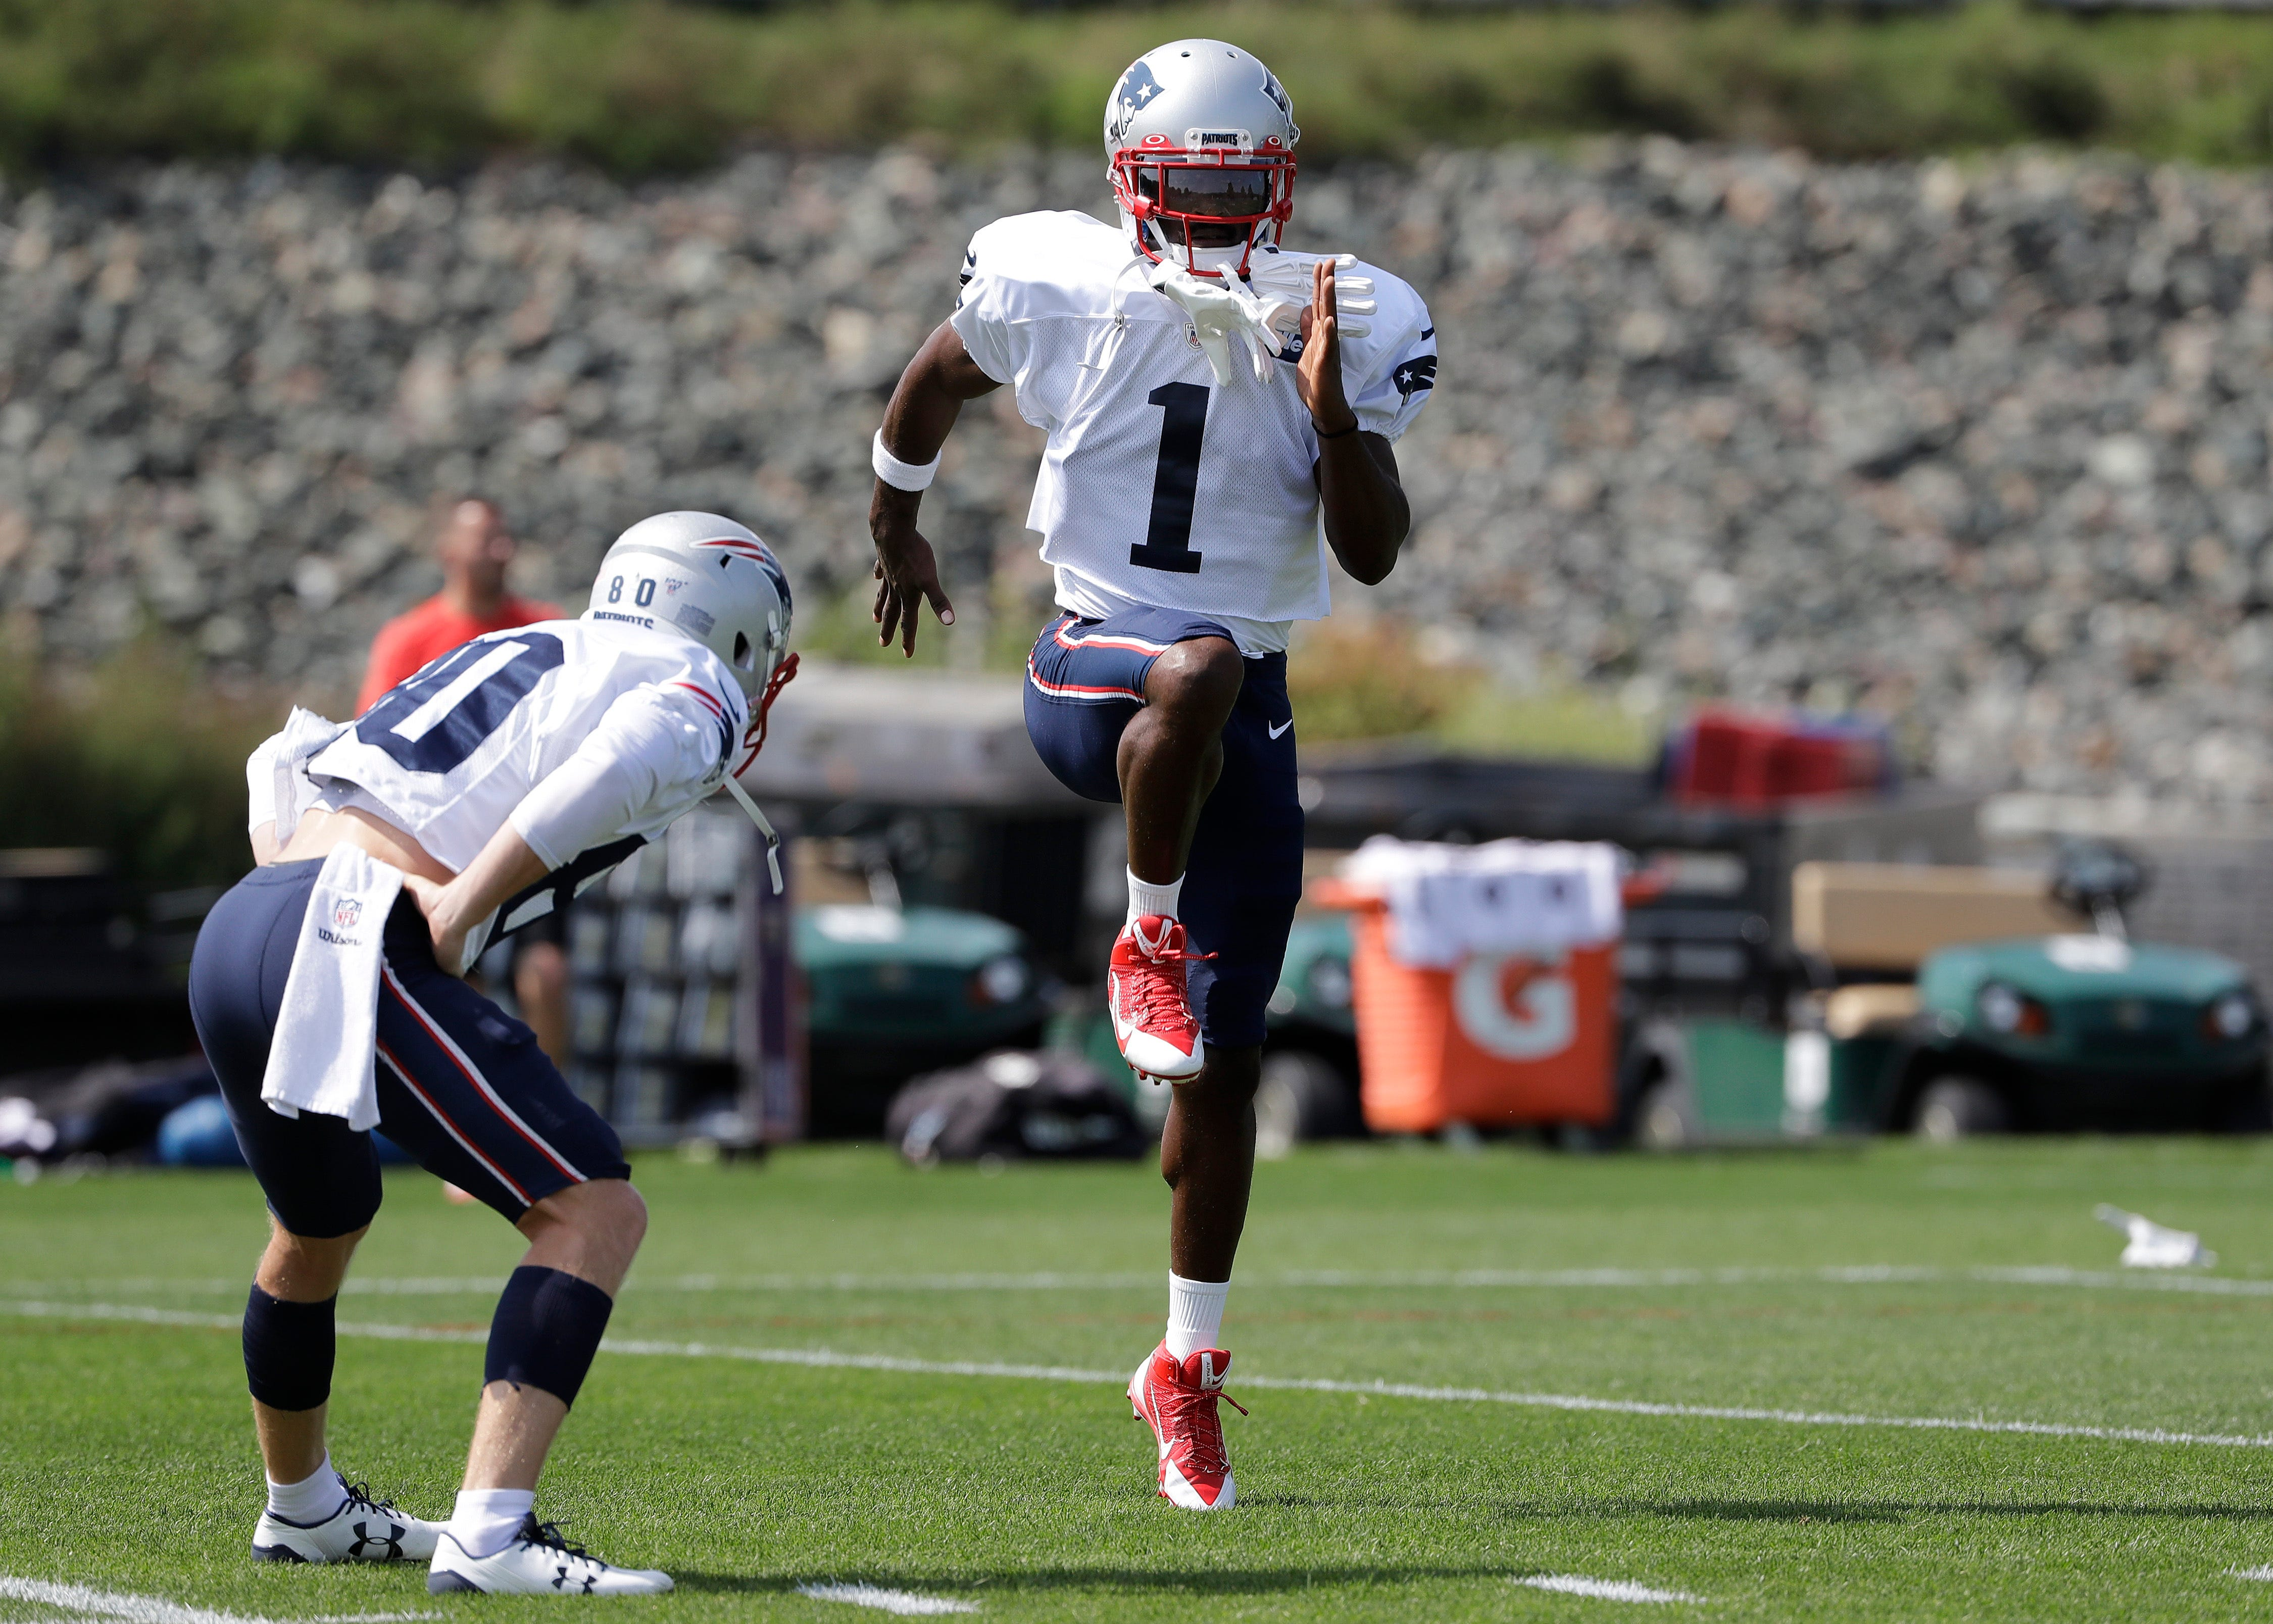 Pats' Antonio Brown said to be eligible, but will he play?